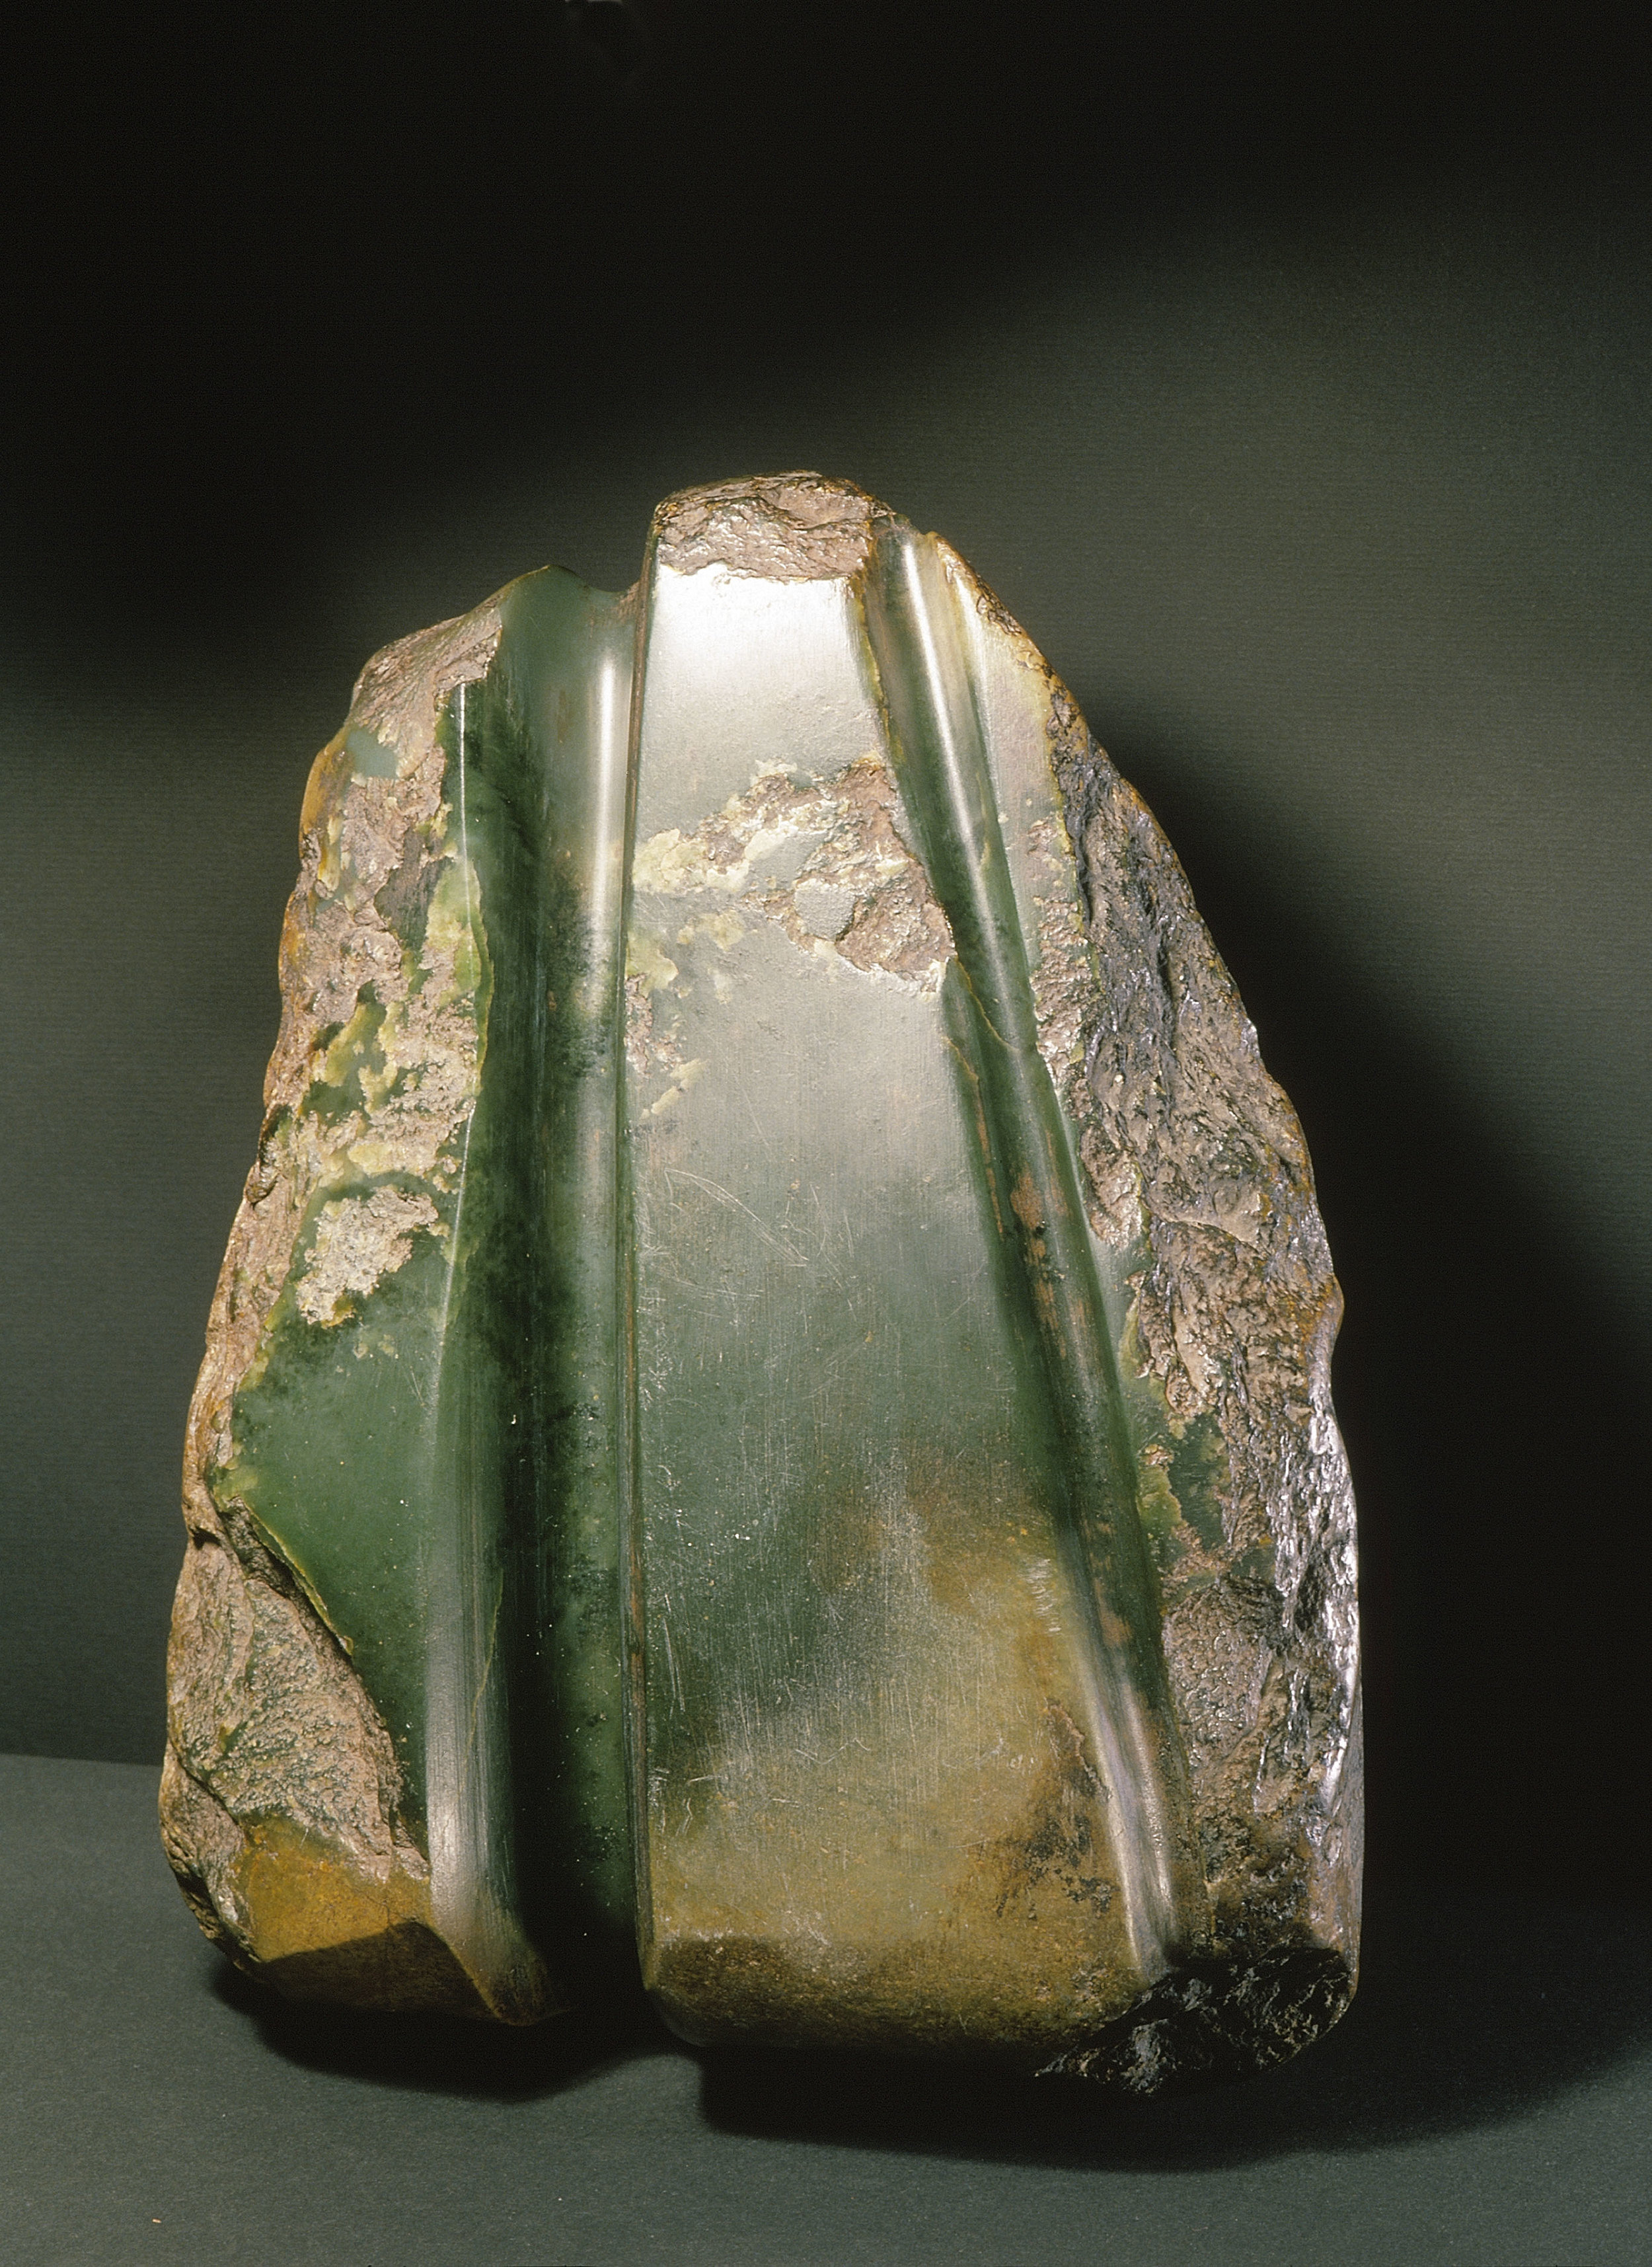 A partially cut out adze blade for a tokipoutangata, or chief's ceremonial axe, from nephrite jade.   19th century   Inv. #: 55405008 © Werner Forman Archive/ Canterbury Museum, Christchurch